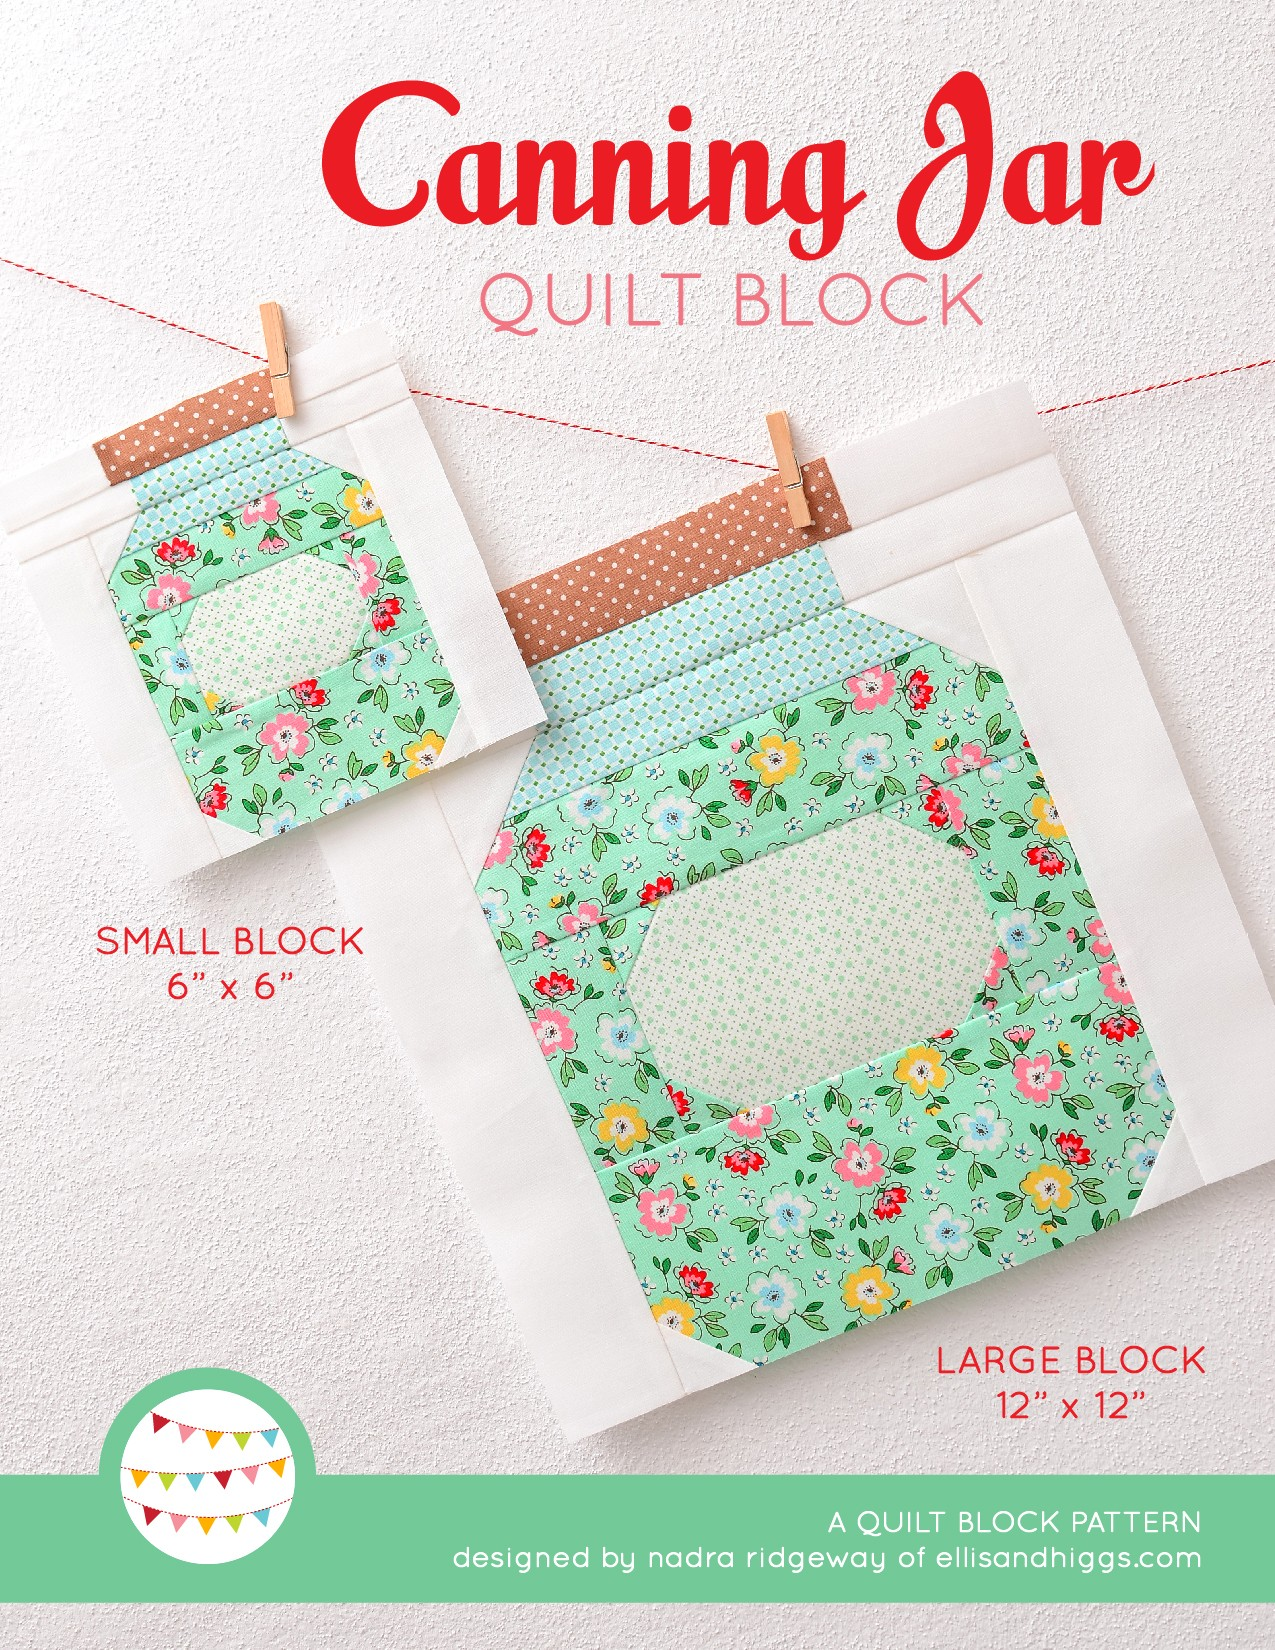 New Fall Quilt Block Patterns by Nadra Ridgeway of ellis & higgs